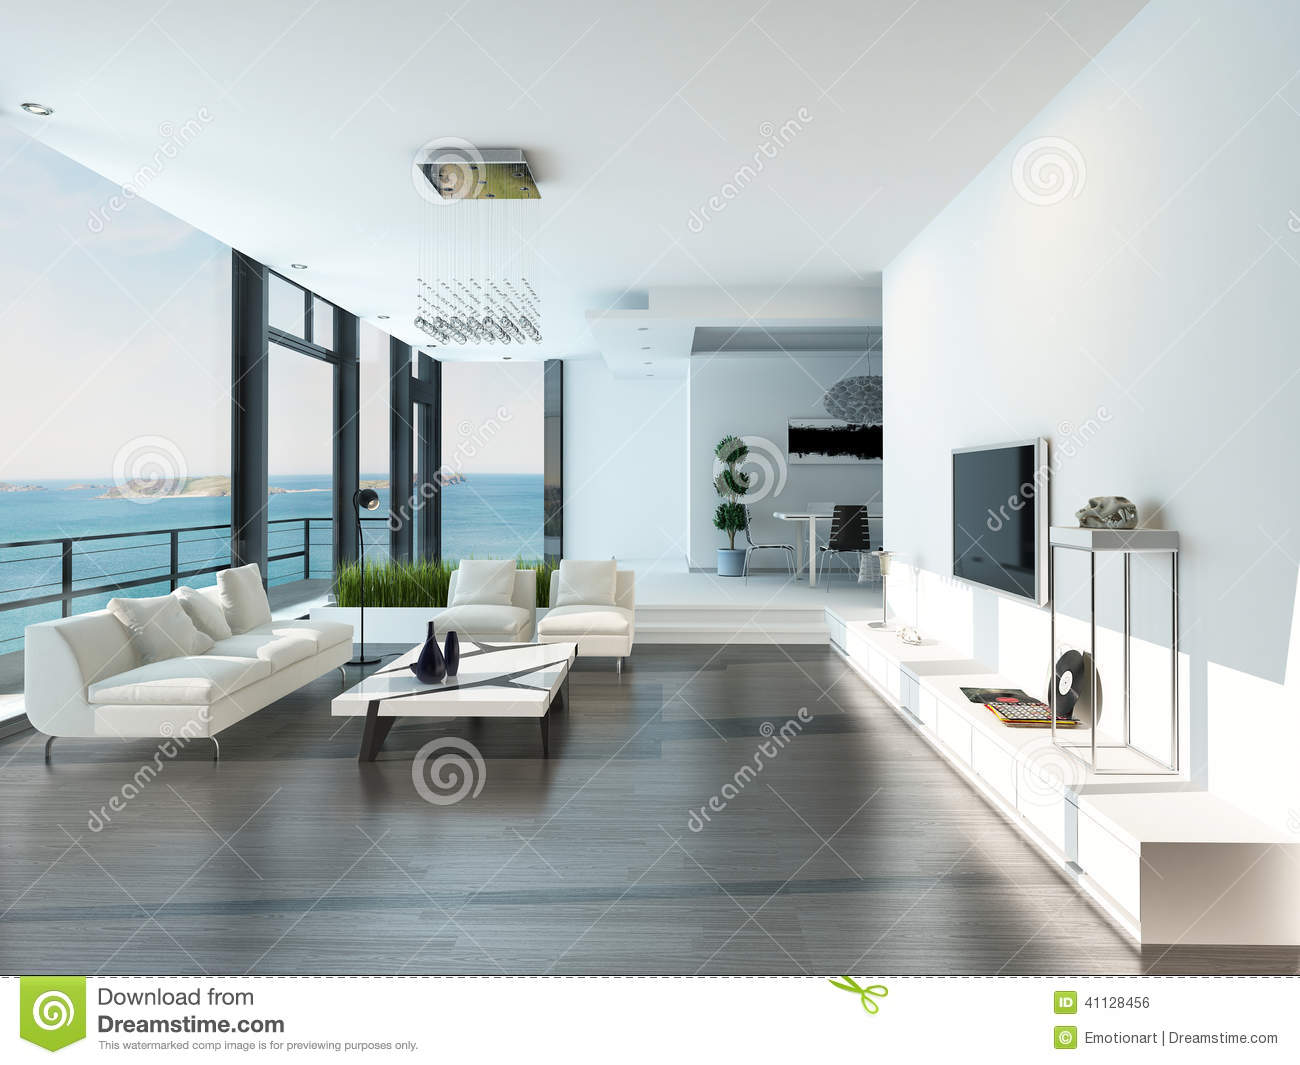 Luxury white living rooms - Royalty Free Illustration Download Luxury Living Room Interior With White